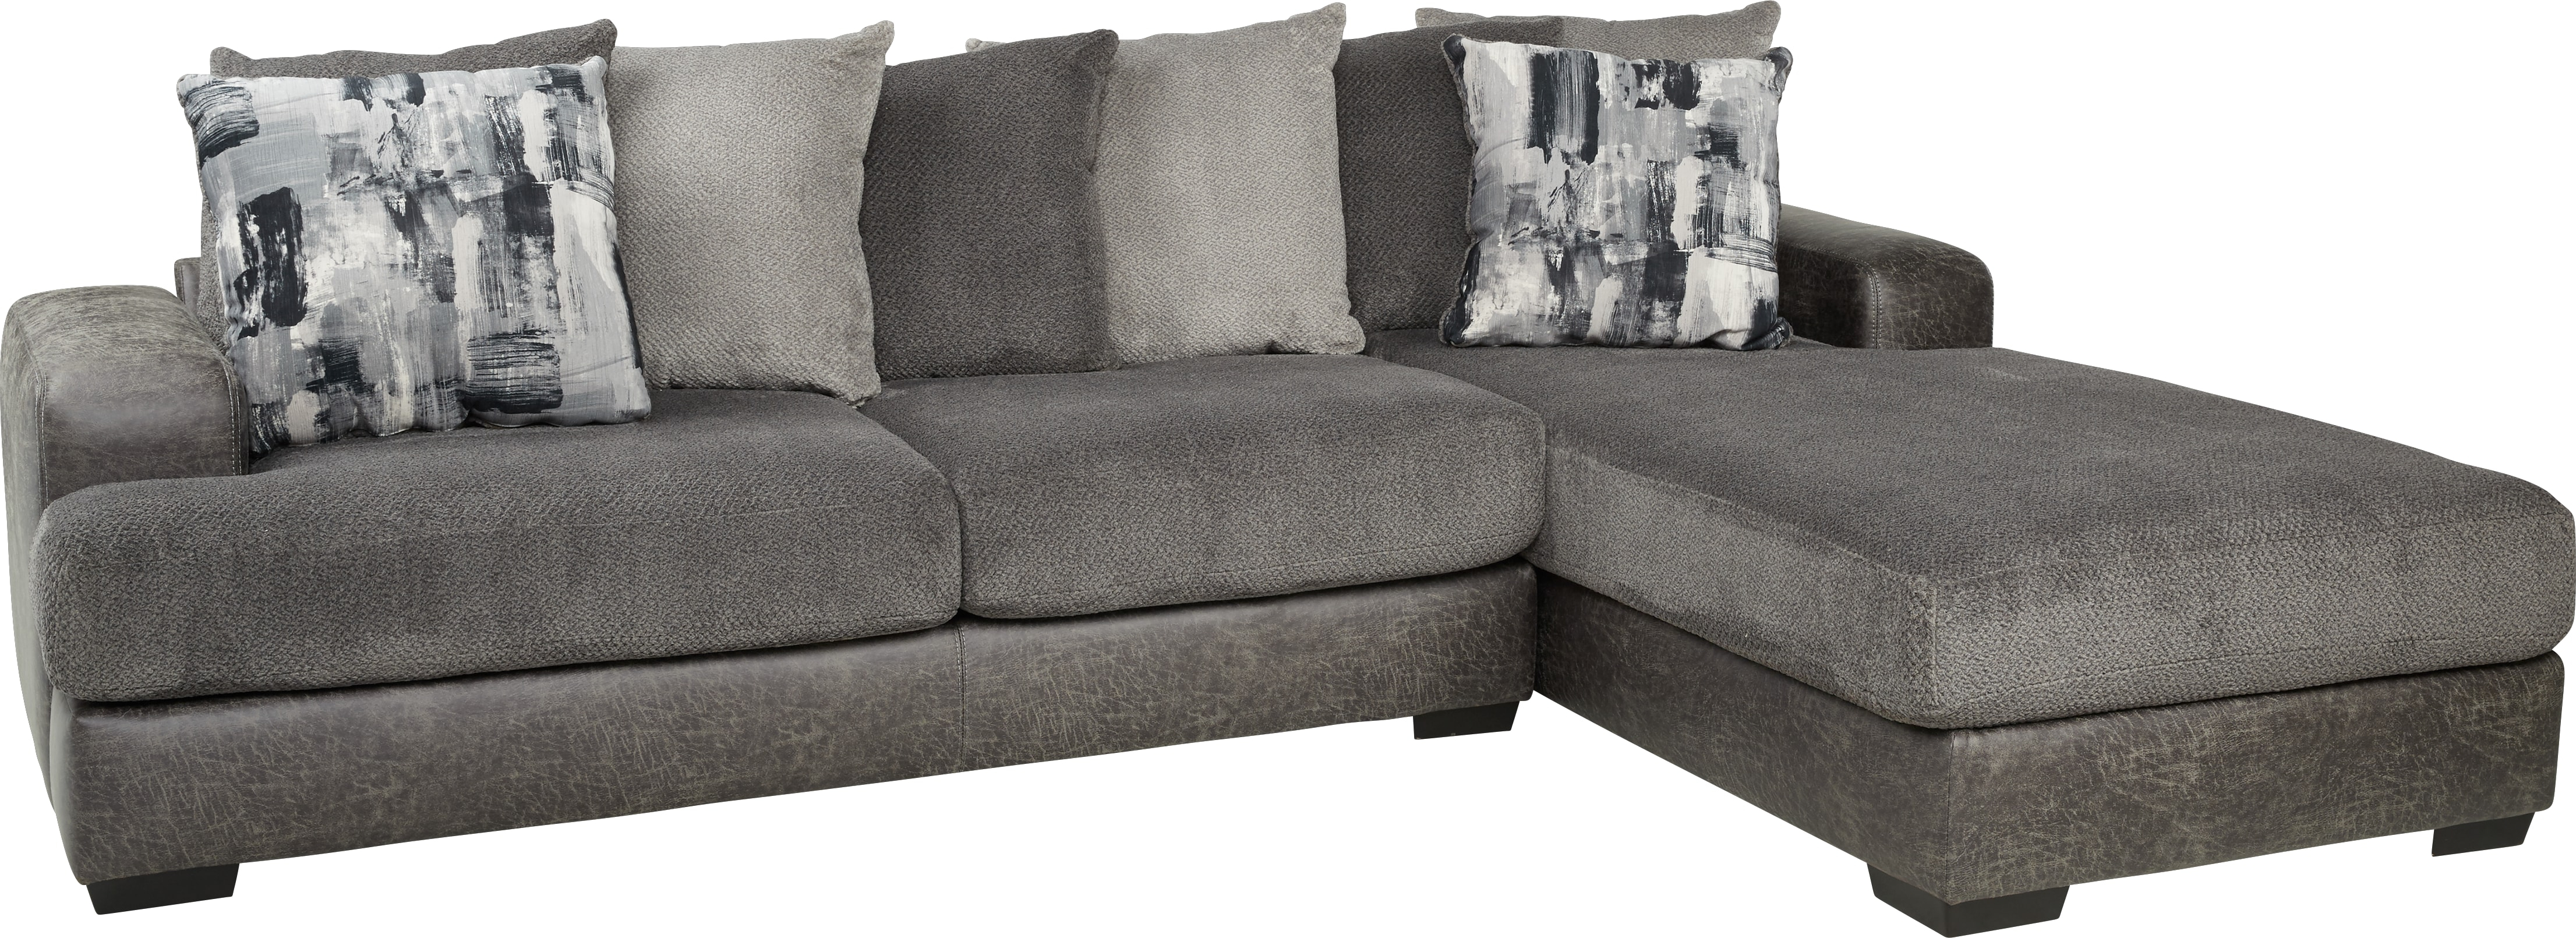 Foster Square Graphite 2 Pc Sectional – Living Room Sets (Gray) Intended For Mcdade Graphite Sofa Chairs (Image 7 of 20)